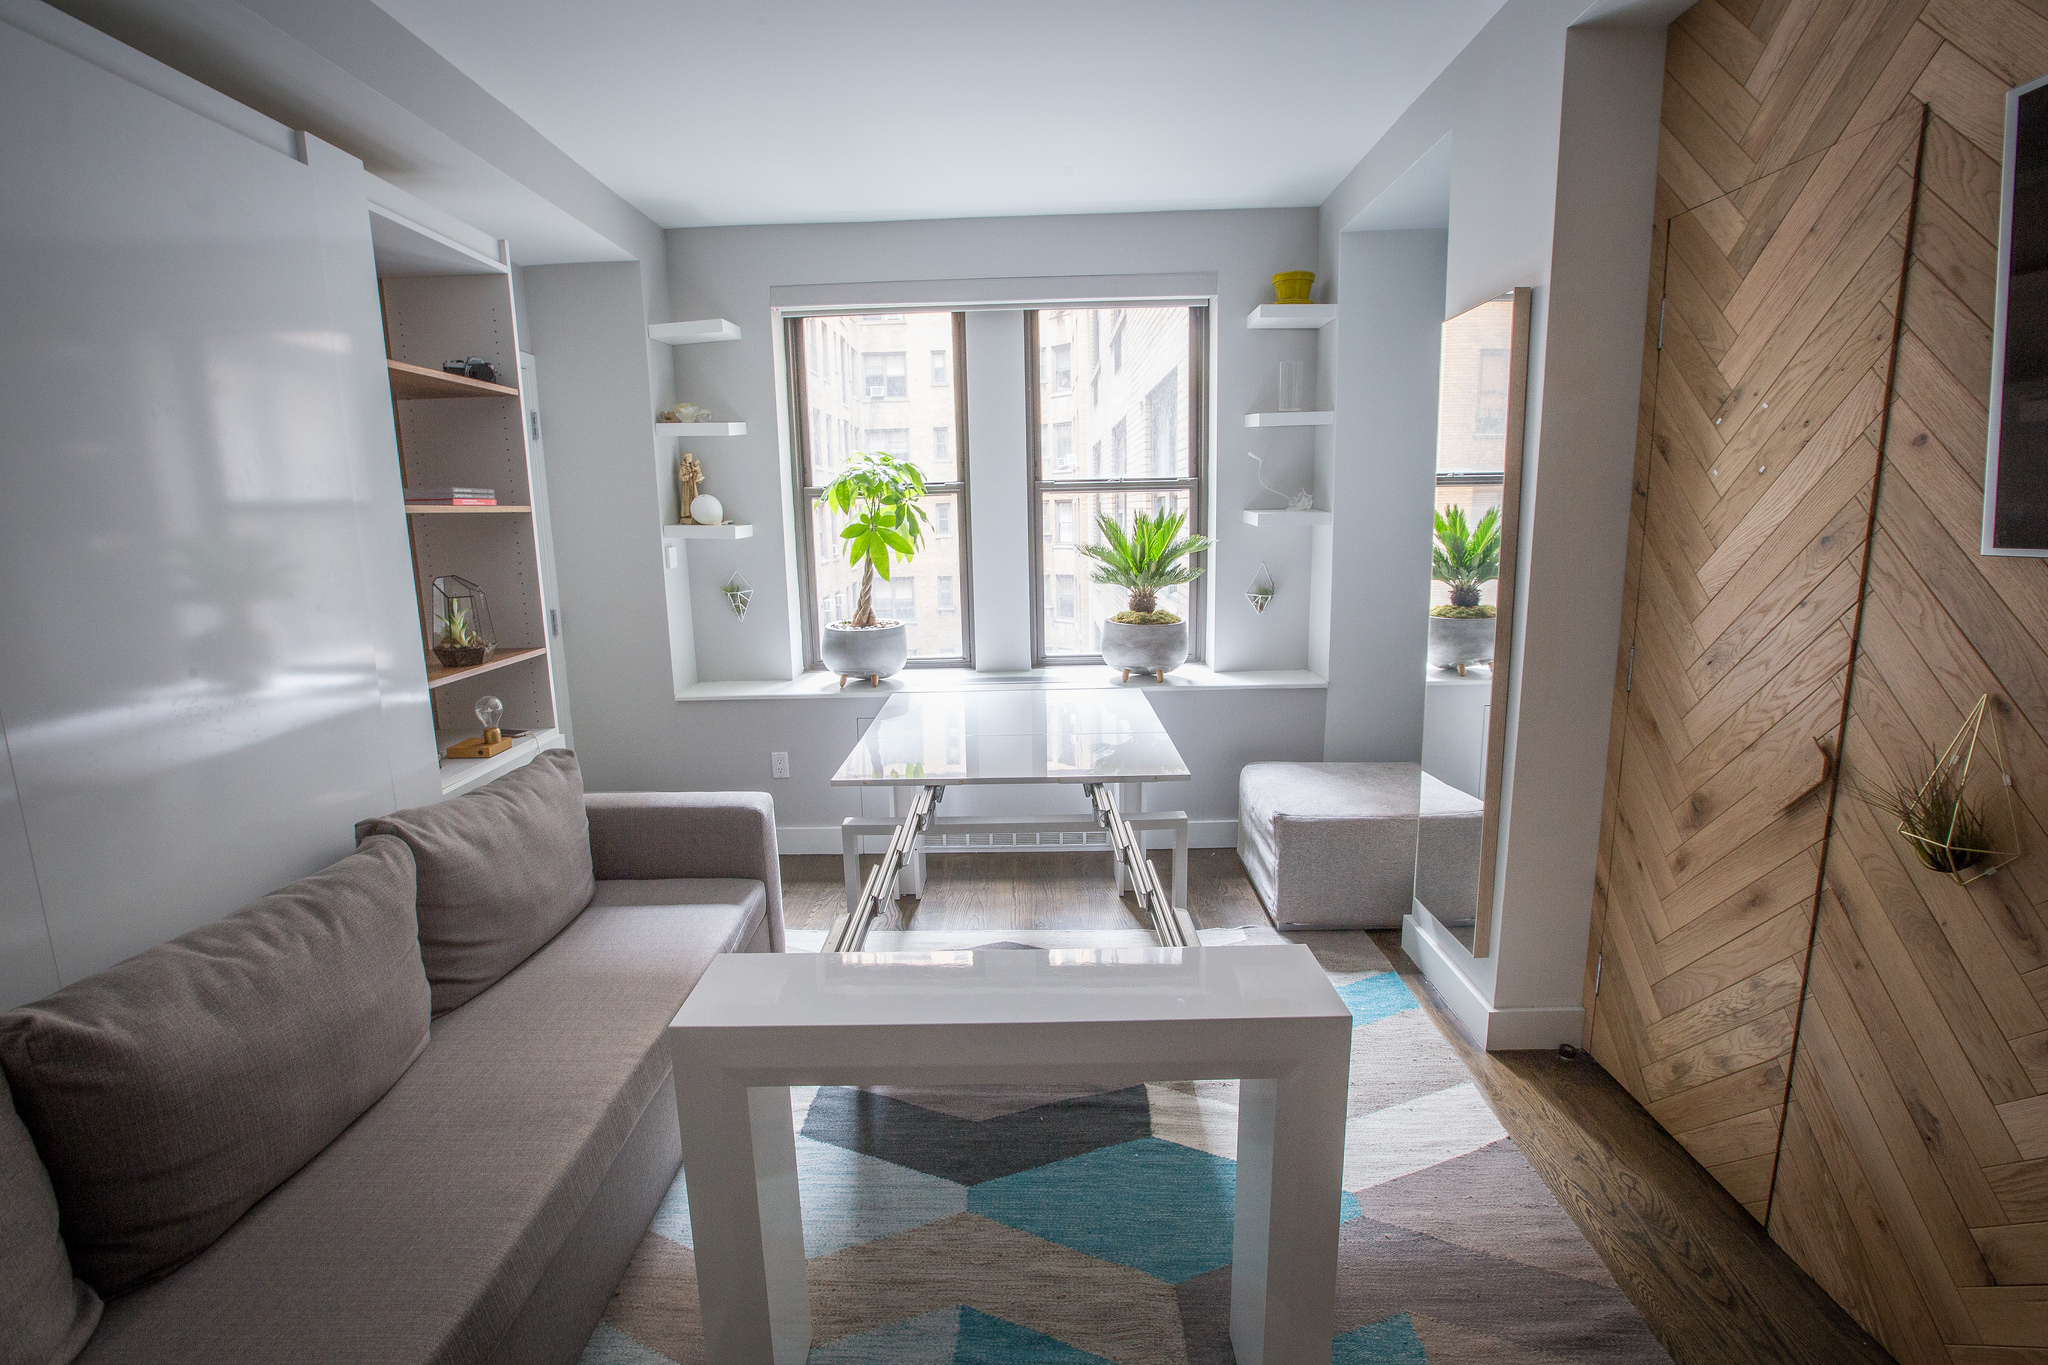 Space Optimized - UWS Apartment